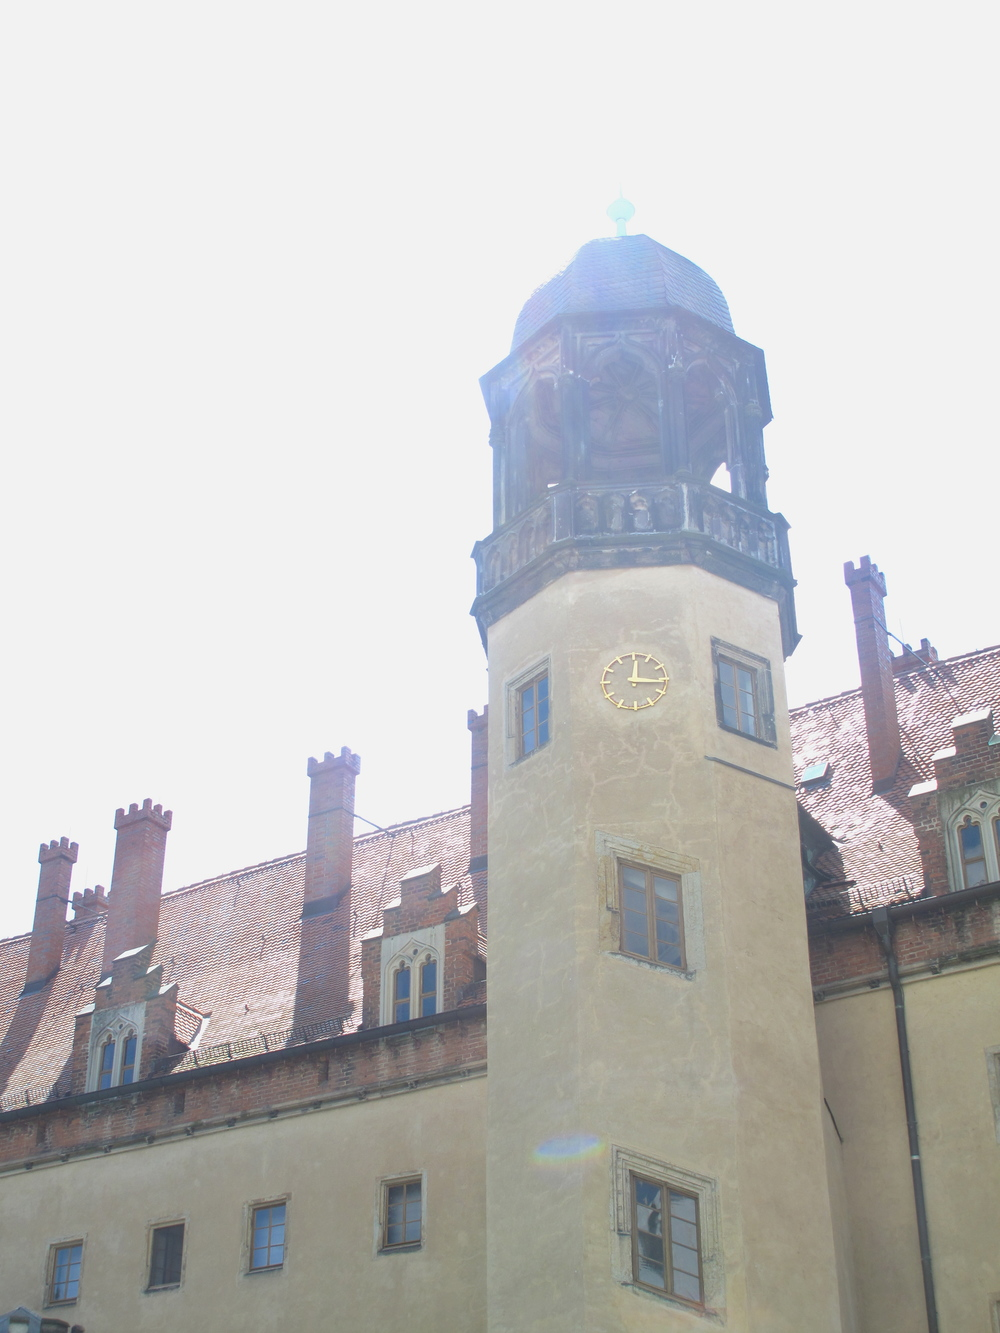 Martin Luther's house in Wittenberg - the tower.